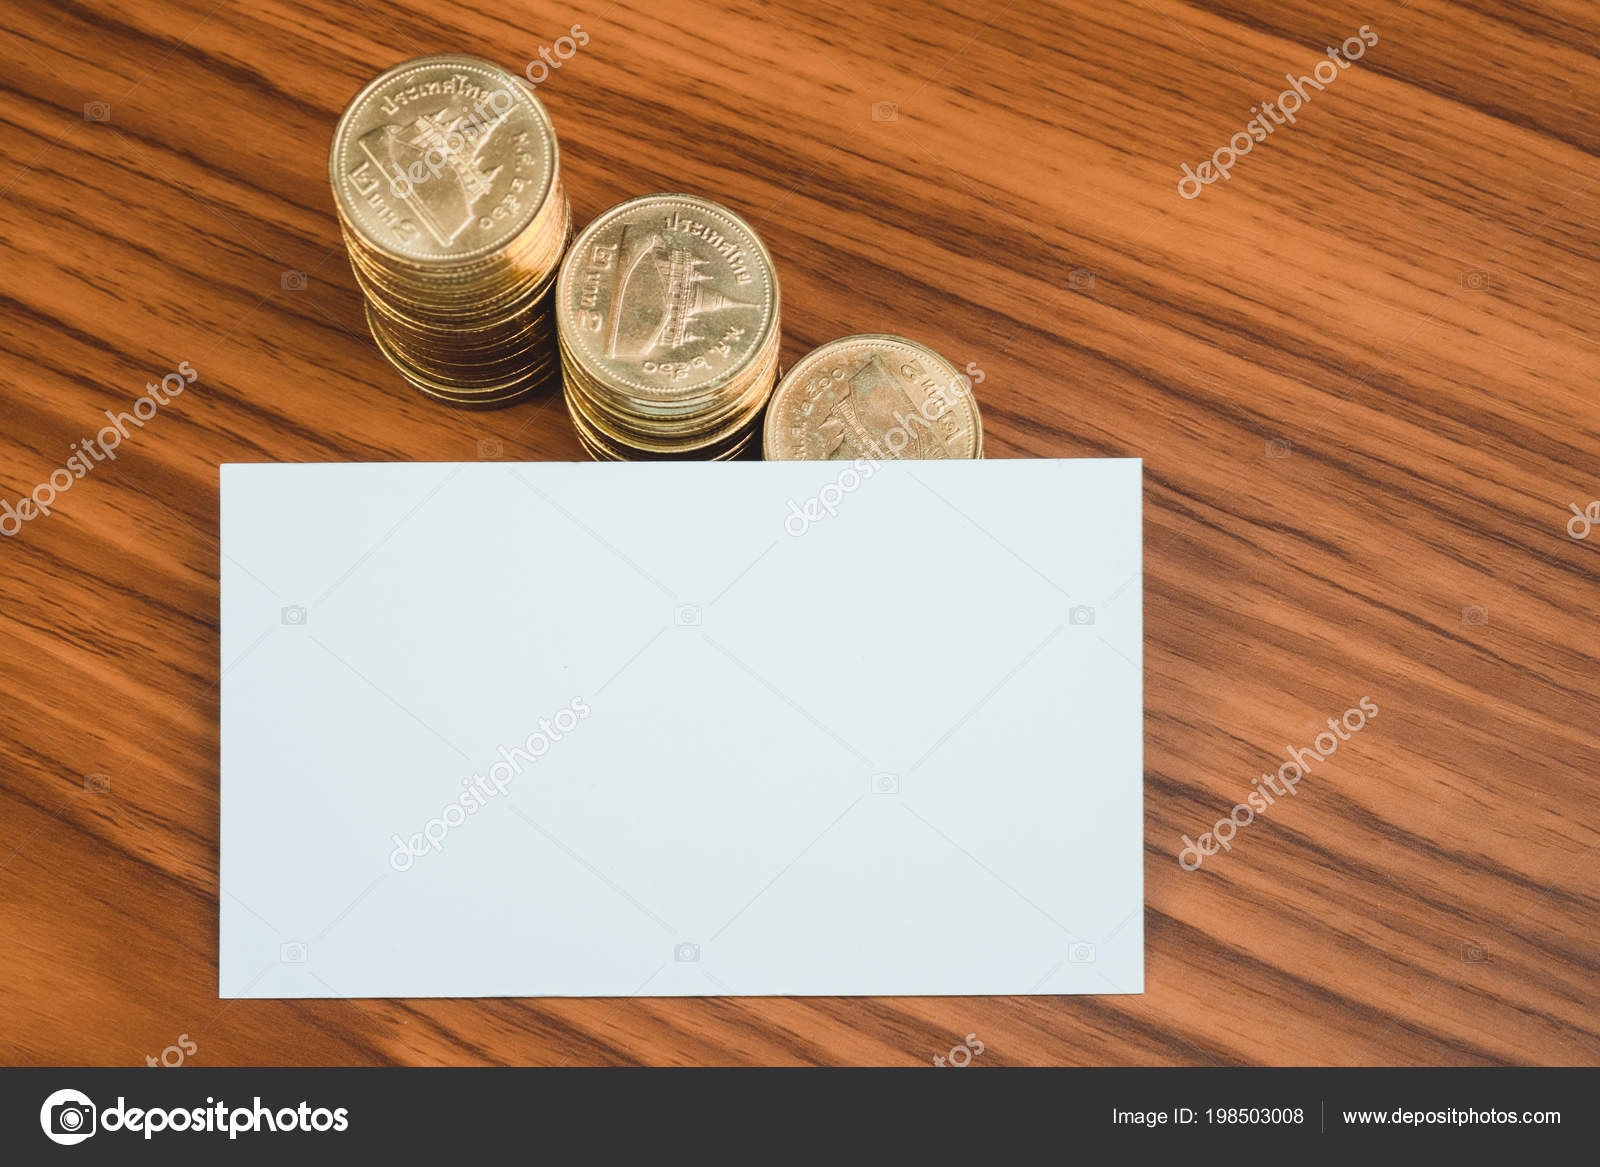 Blank business card name card space add text name address stock blank business card or name card with space for add text name address and logo stack of coin on working table financial company concept idea colourmoves